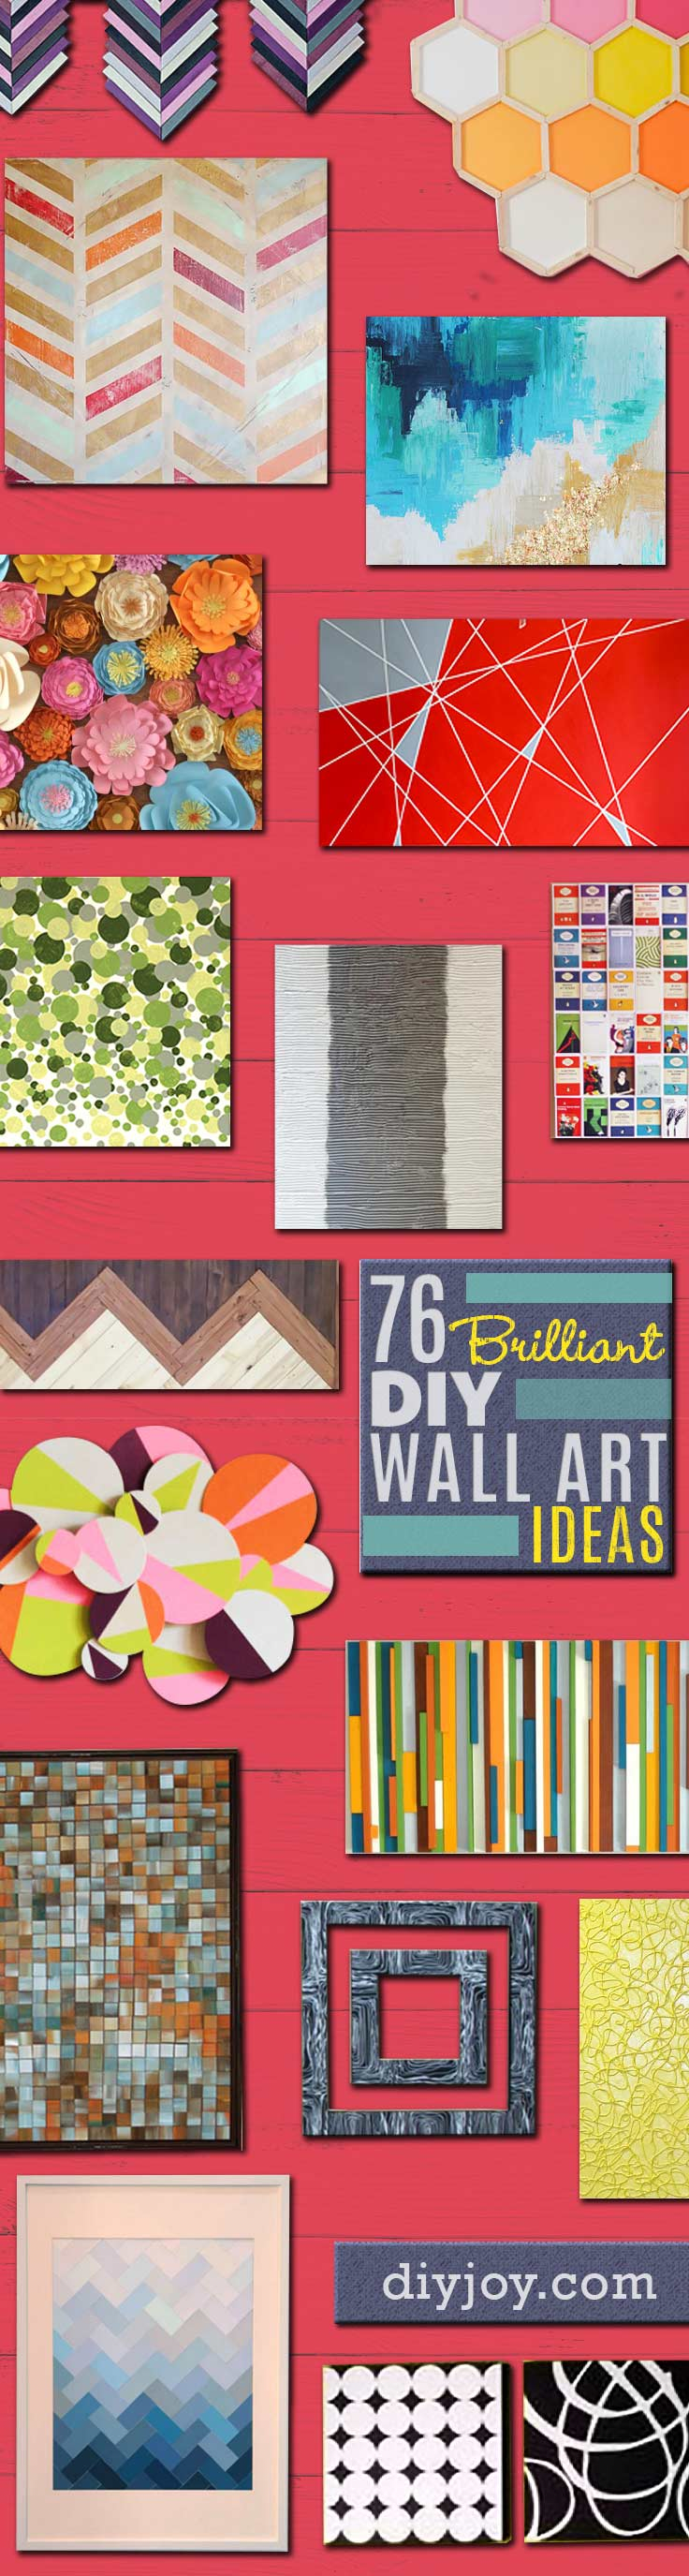 DIY Wall Art Ideas and Do It Yourself Wall Decor for Living Room, Bedroom, Bathroom, Teen Rooms | Modern, Abstract, Rustic, Simple, Easy and Affordable Wall Art Tutorials | Cheap Ideas for Those On A Budget. Paint Awesome Hanging Pictures With These Easy Step By Step Instructions for DIY Projects and Home Decor Ideas | Easy and Cheap Christmas Gift Ideas for Family and Friends http://diyjoy.com/diy-wall-art-decor-ideas